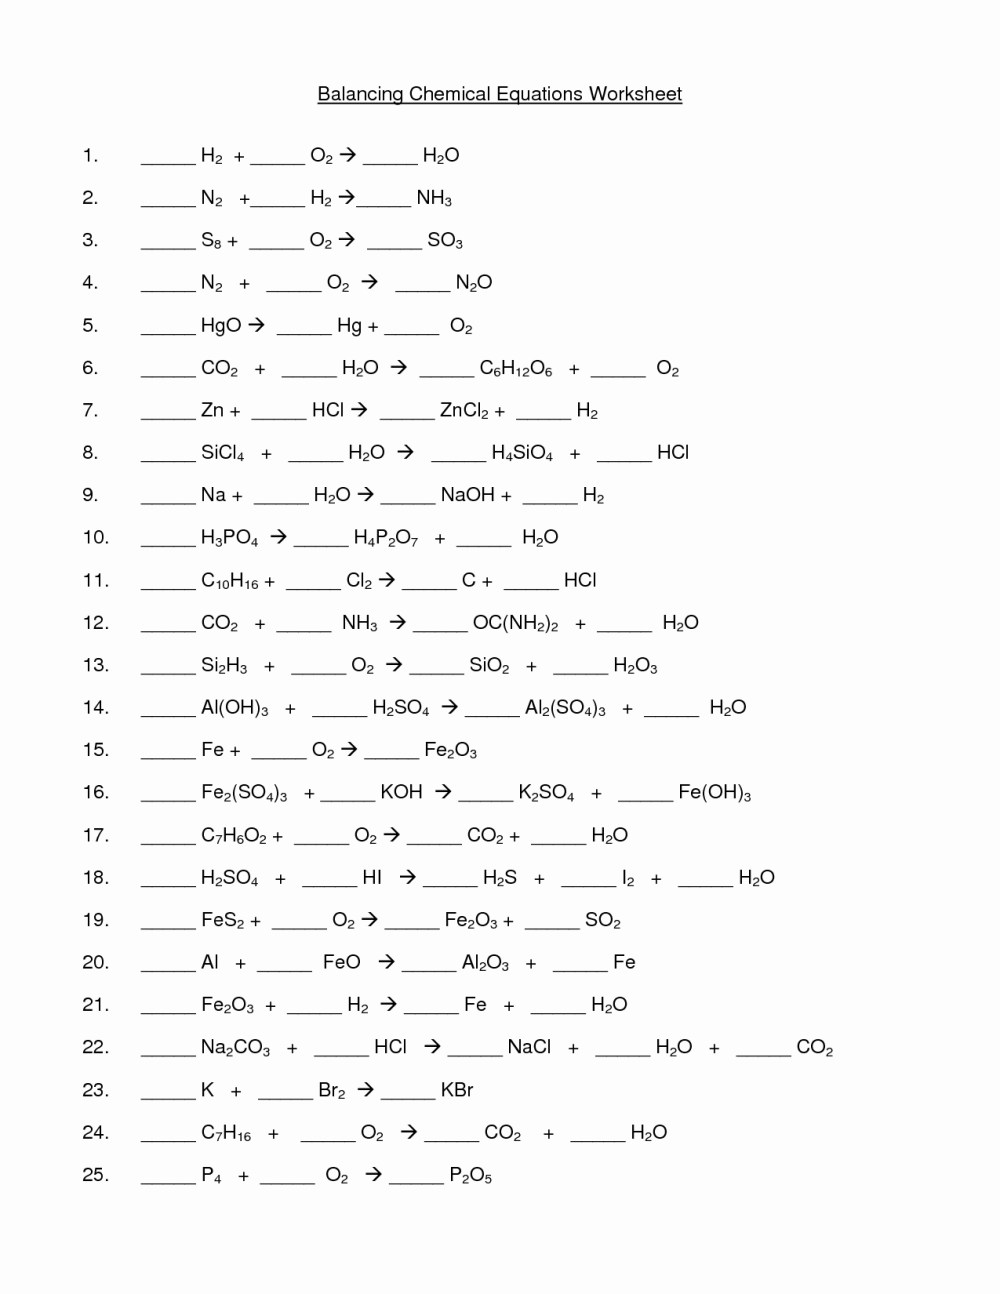 medium resolution of Balancing Algebraic Equations Worksheet   Printable Worksheets and  Activities for Teachers